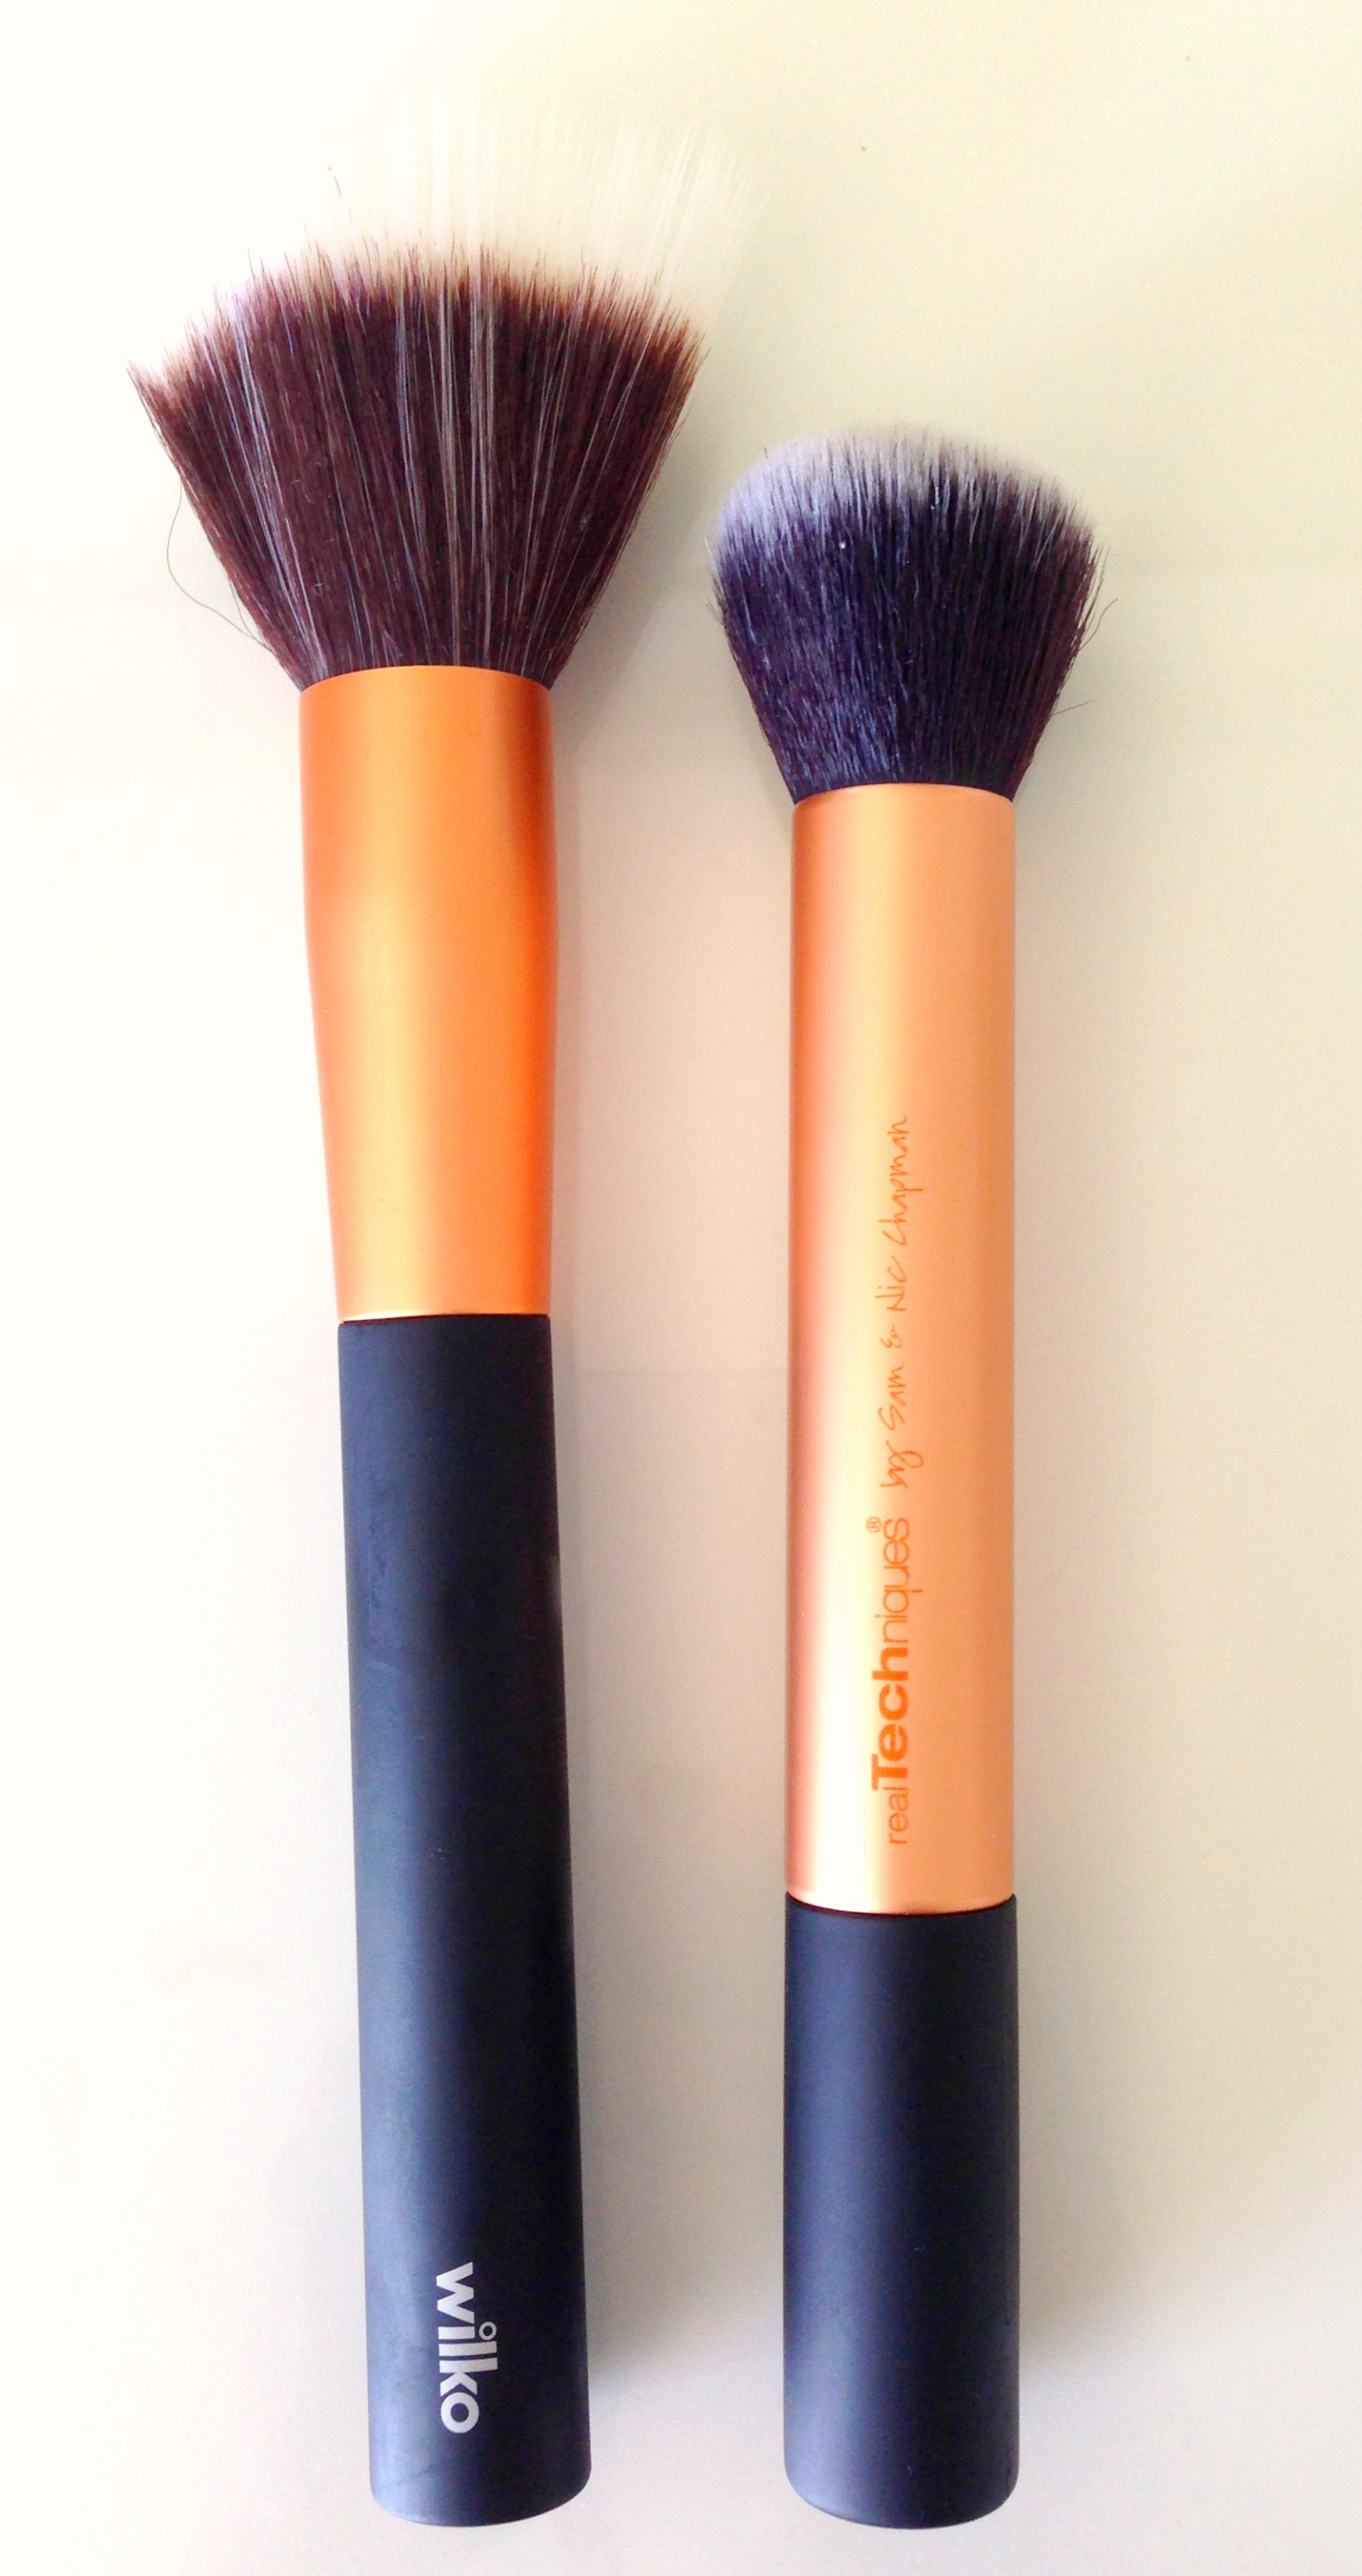 Makeup Brushes Sponge Collection: Wilko Premium Makeup Brush Collection